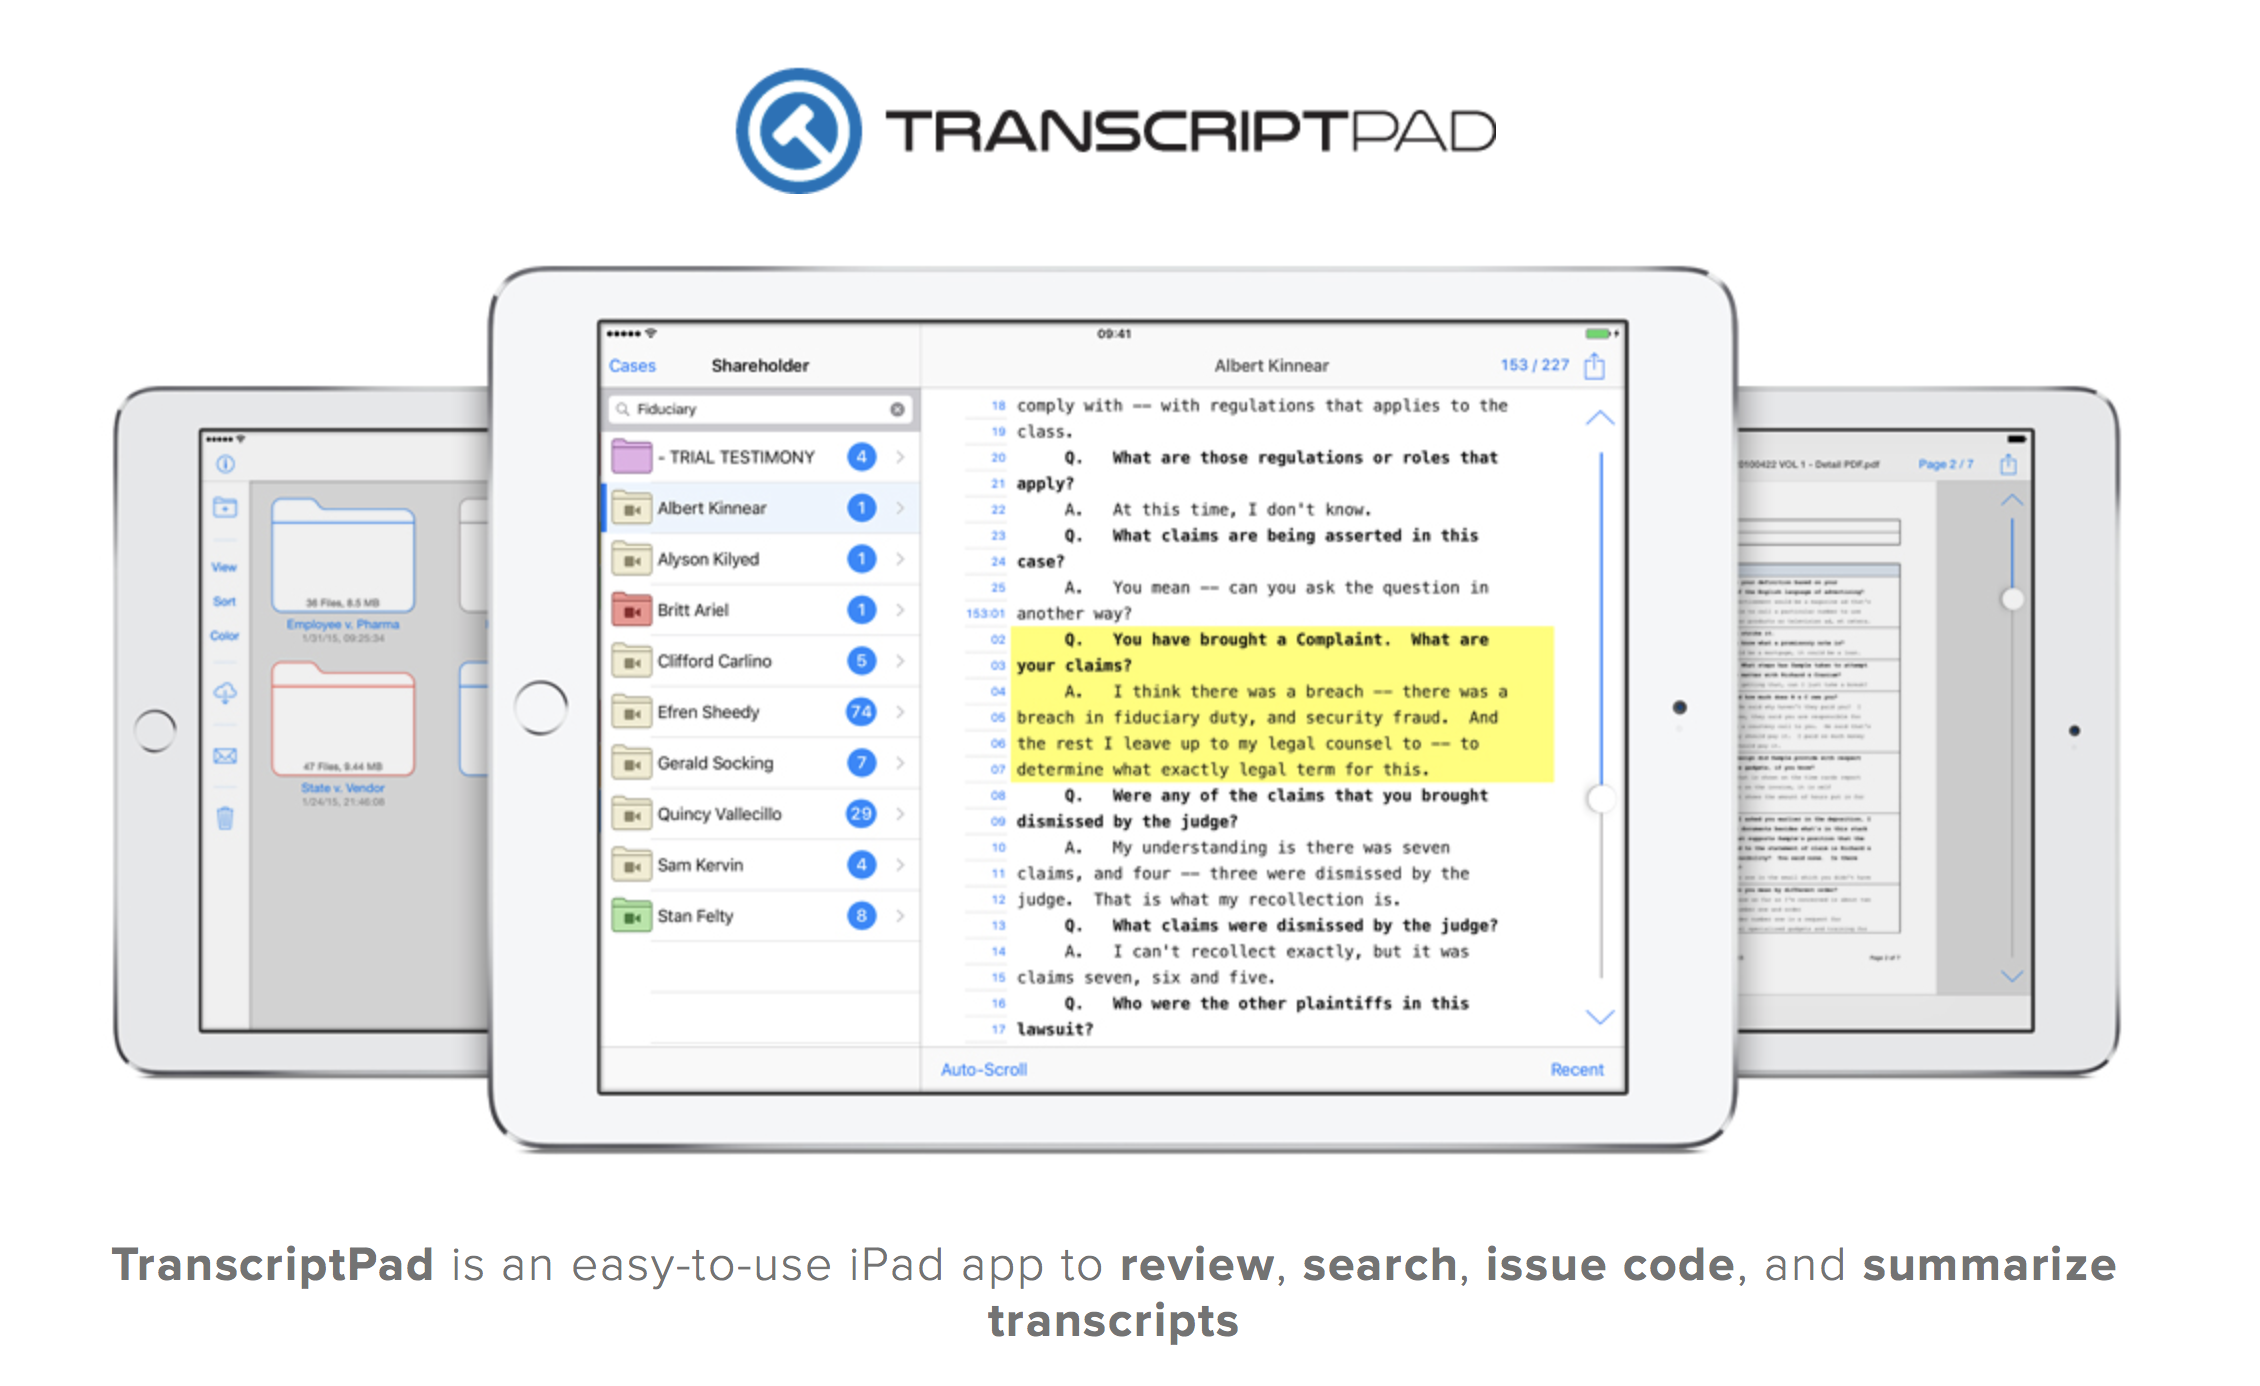 TranscriptPad for iPad - Like DocReviewPad, this is a similar application that allows you to review and assign issue codes to deposition transcripts.  Another LitSoftware product, it works seamlessly with TrialPad for iPad.